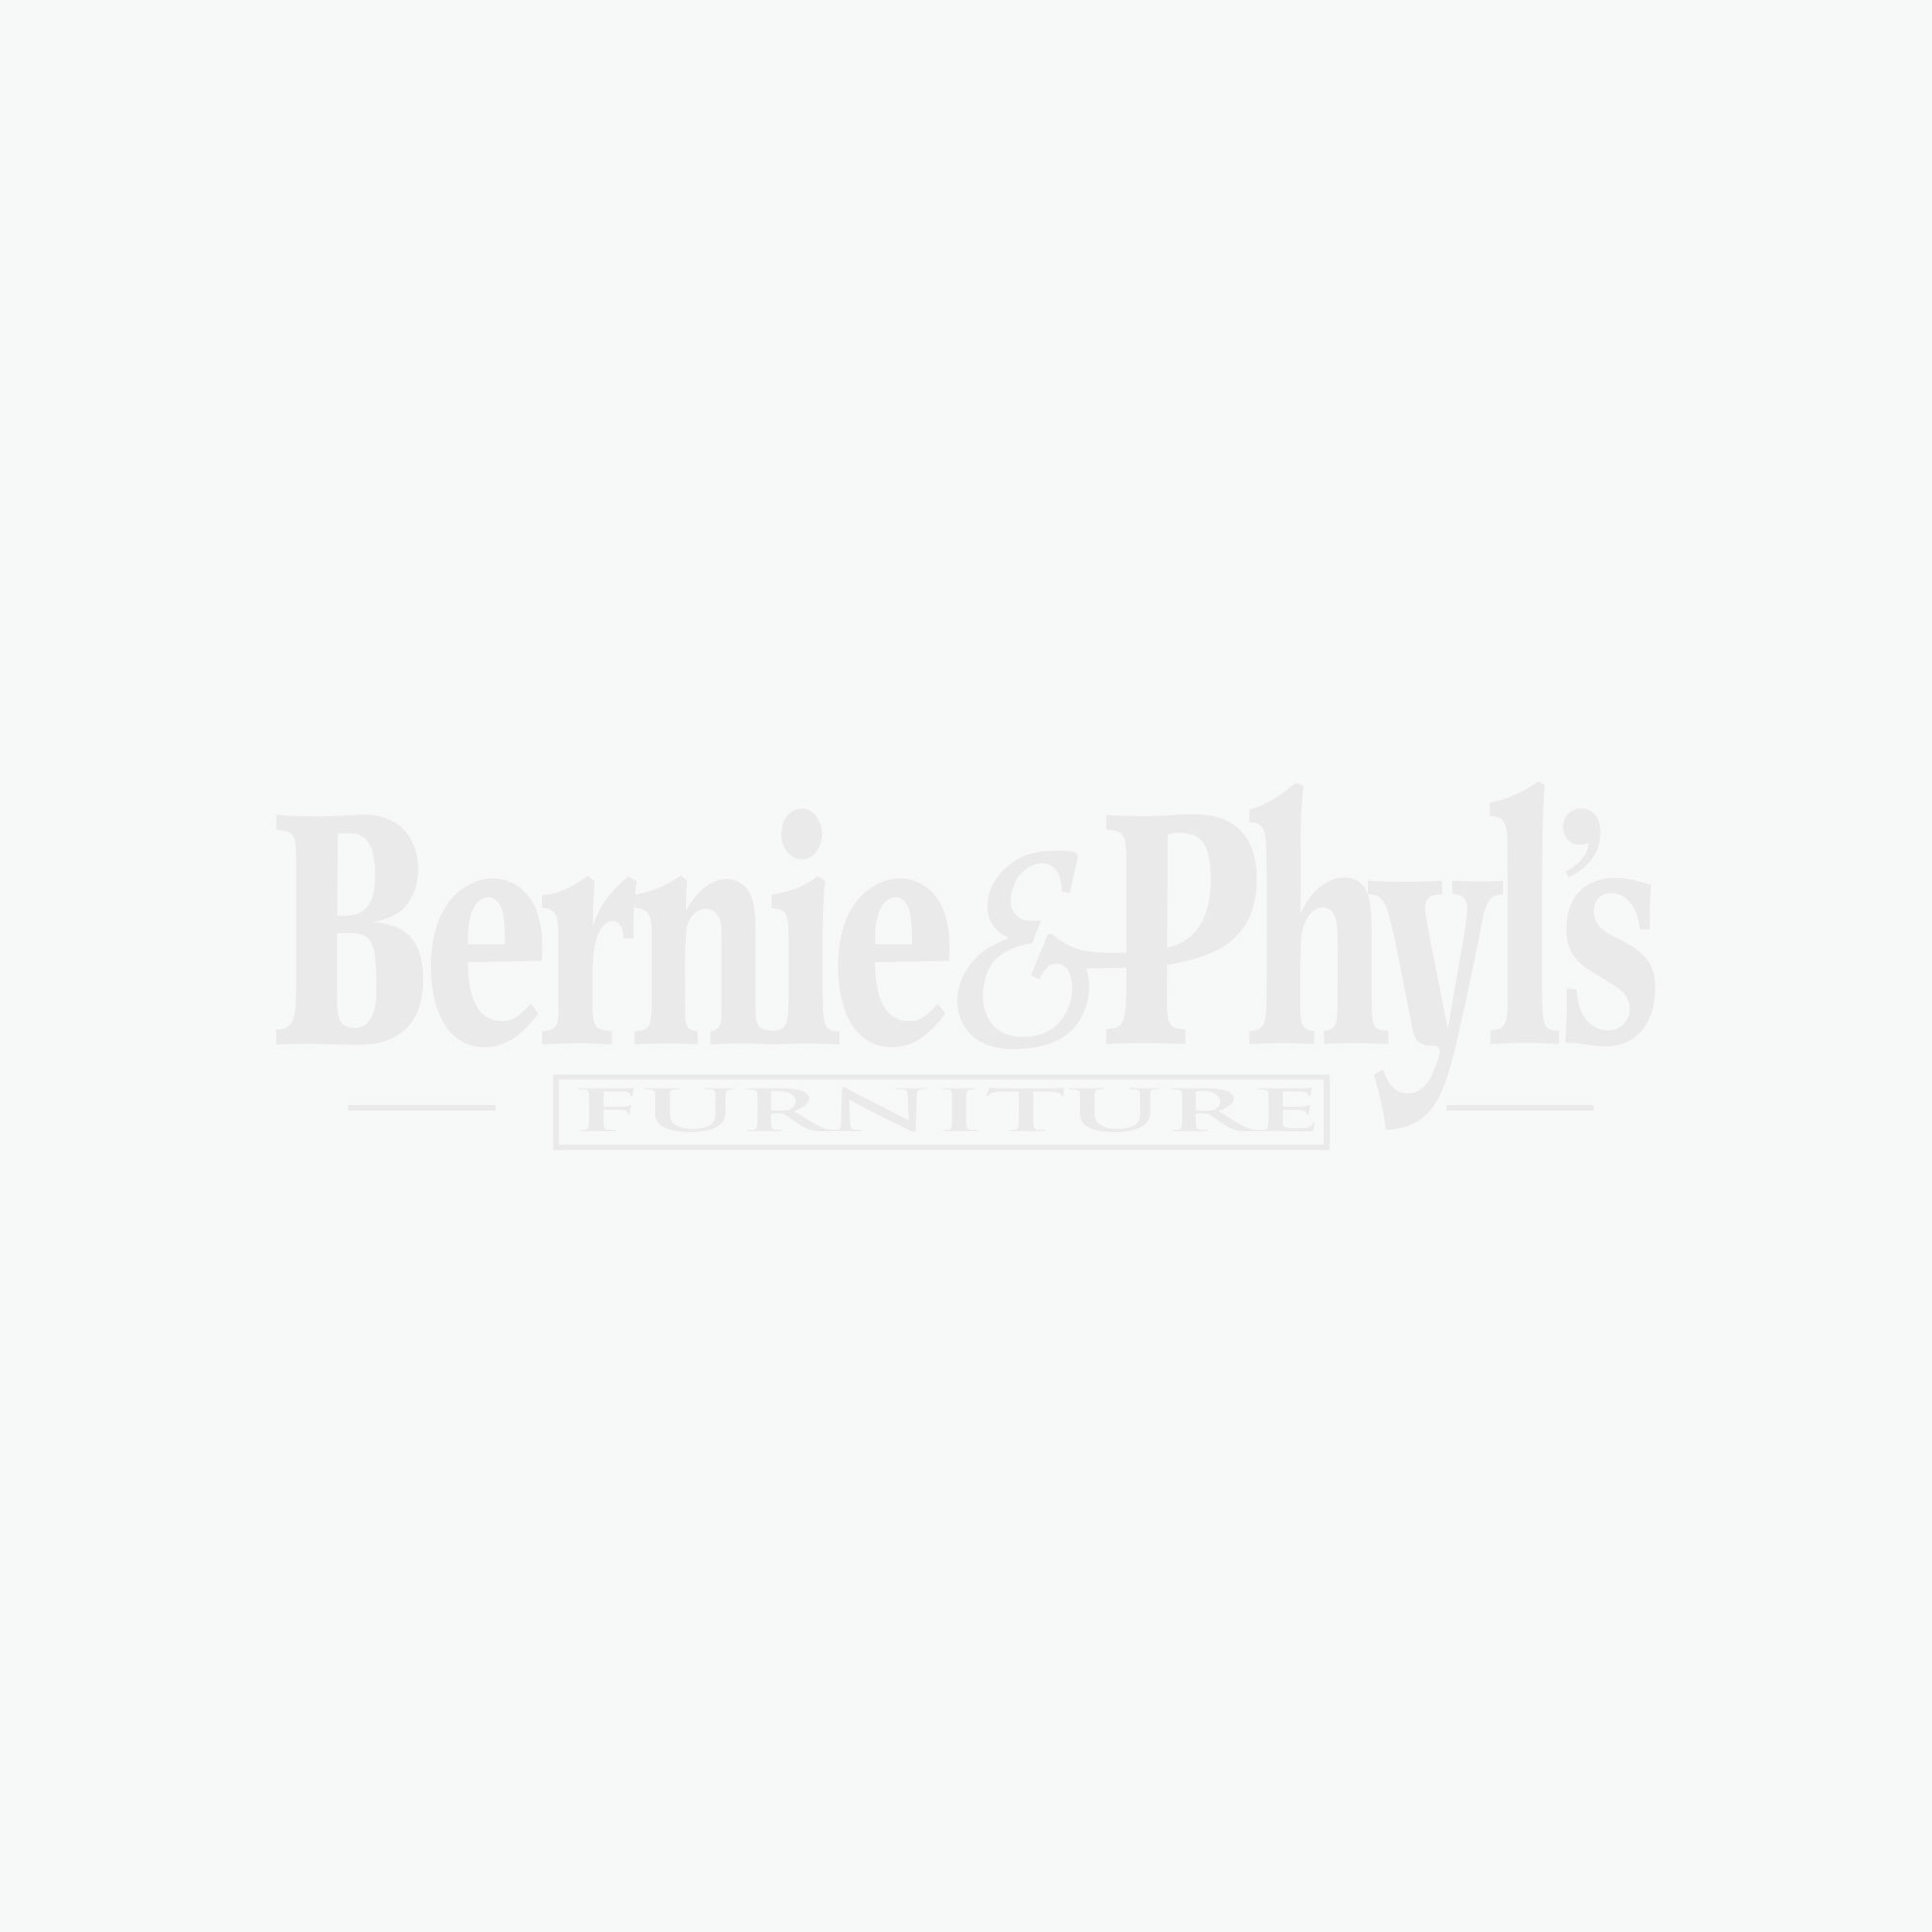 Bakersfield 6 Piece Dining Set Rectangular Table With 4 Side Chairs And Bench Bernie Phyl S Furniture By Jofran Inc